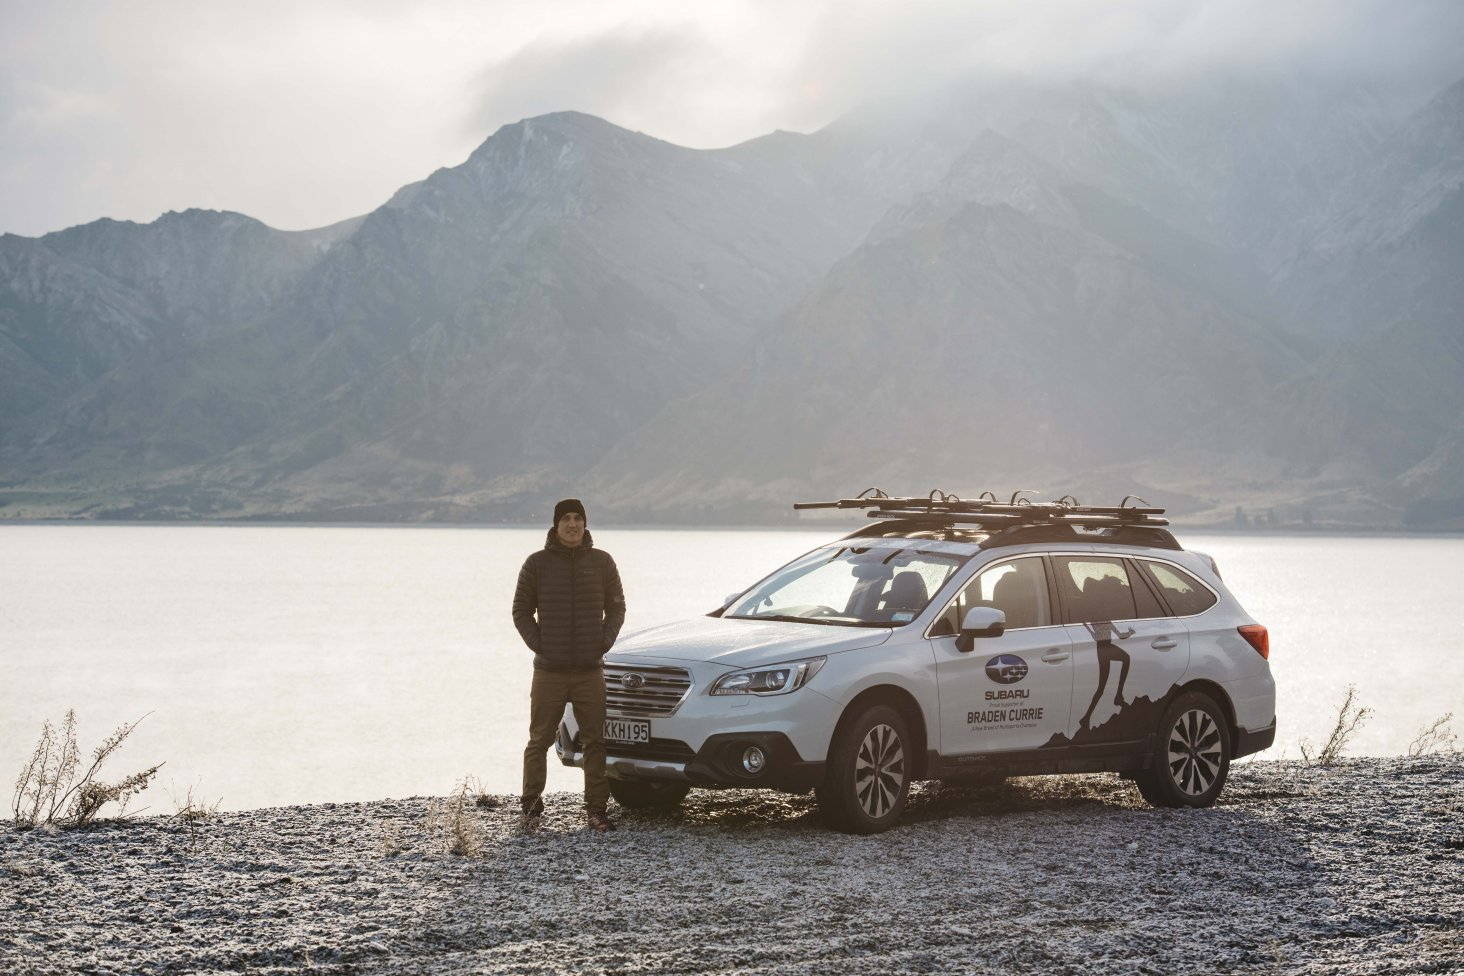 Braden Currie is looking forward to some family adventures in his Subaru Outback when he returns to New Zealand later this month. PHOTO: MICKEY ROSS.